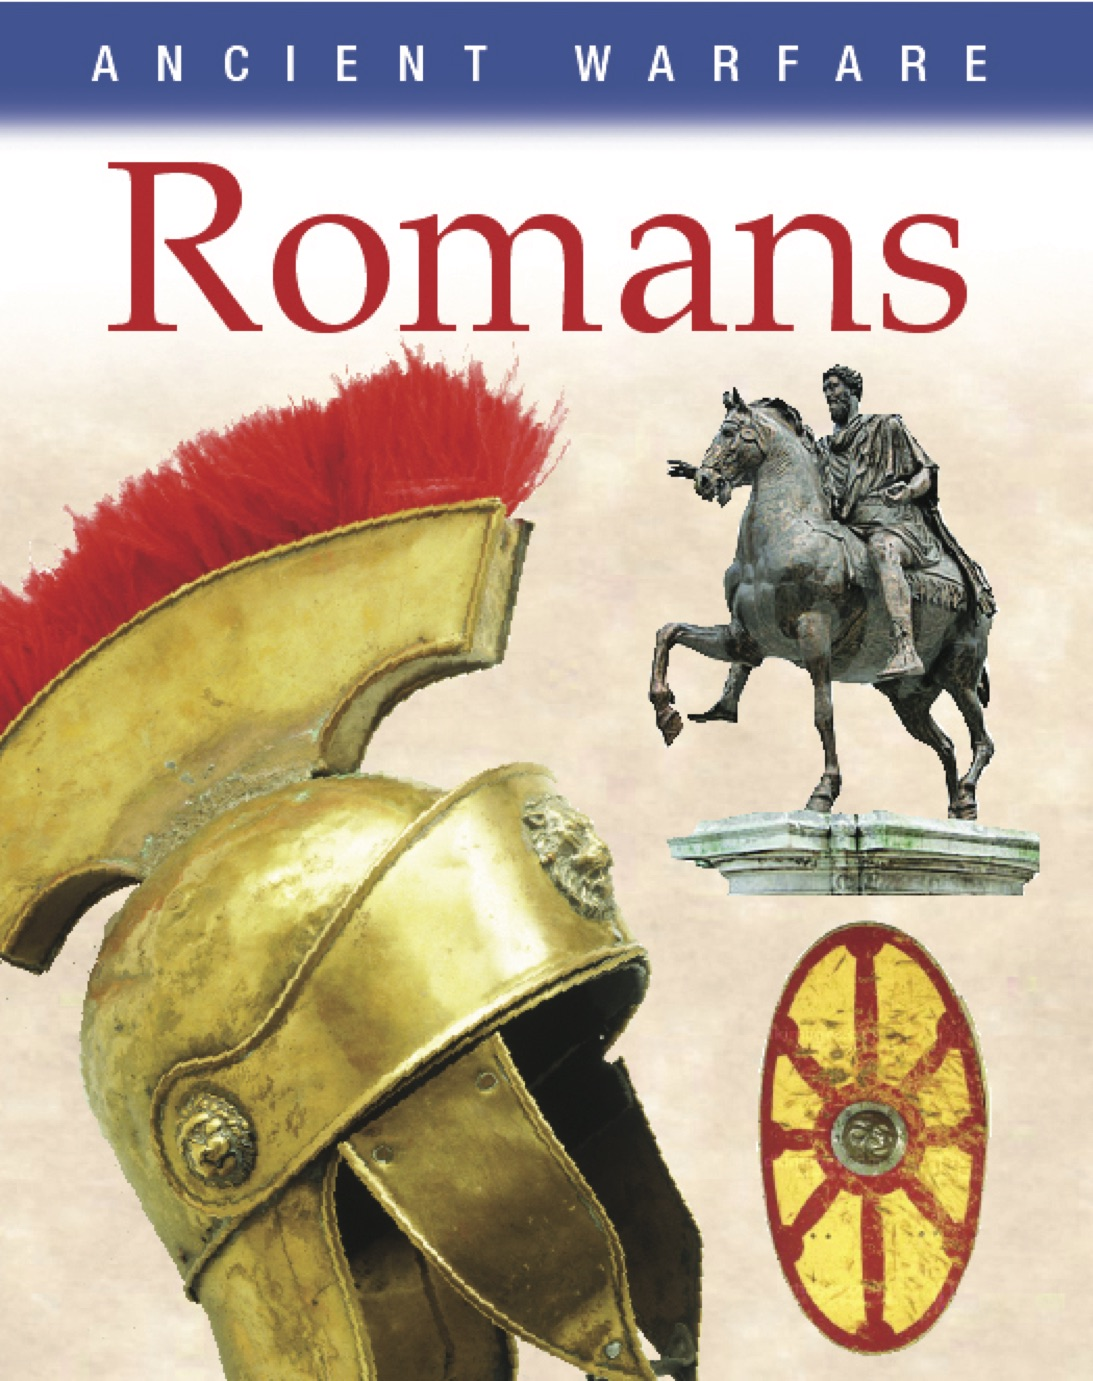 Ancient Warfare: Romans